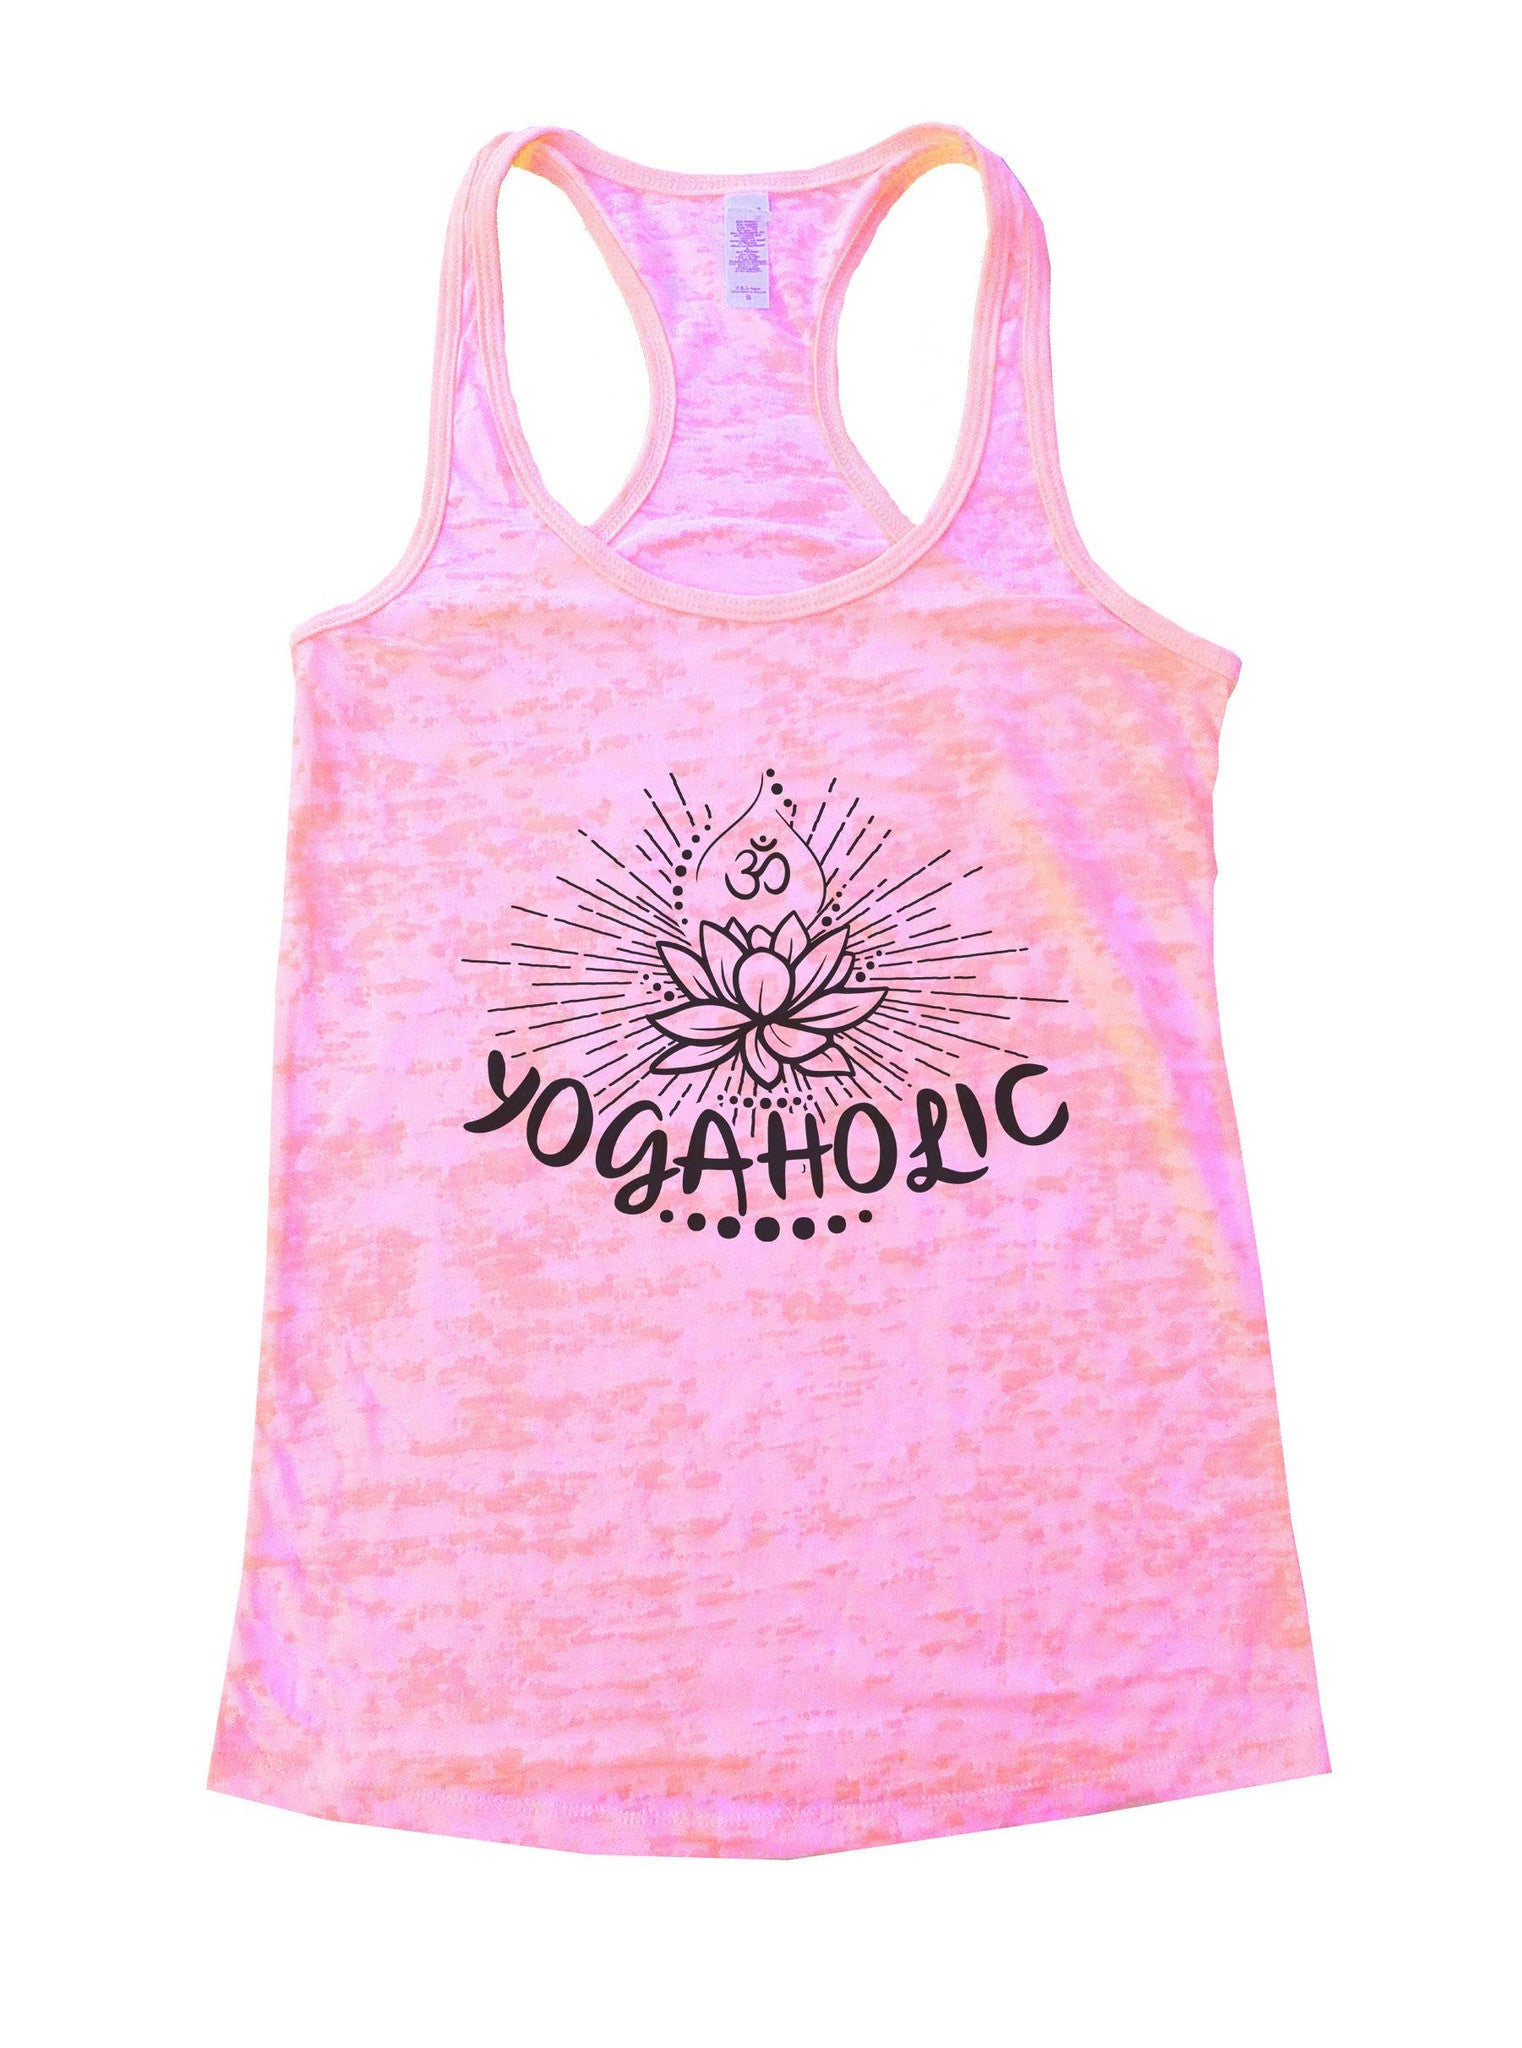 Yogaholic Burnout Tank Top By BurnoutTankTops.com - 1017 - Funny Shirts Tank Tops Burnouts and Triblends  - 2